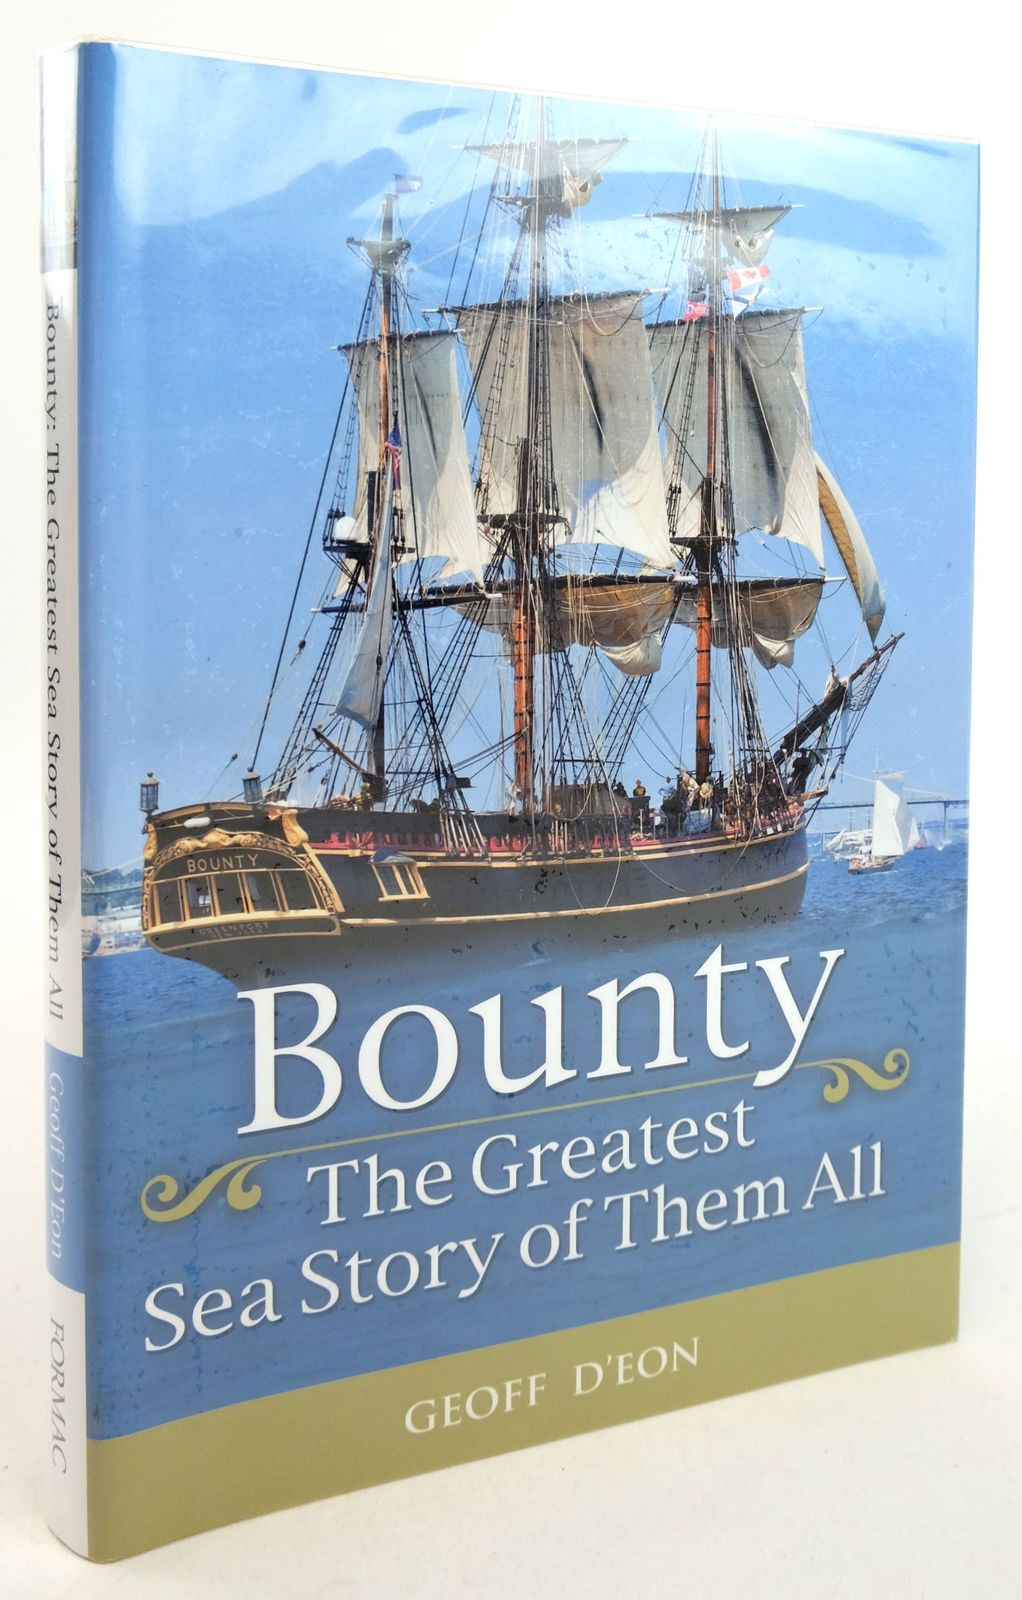 Photo of BOUNTY: THE GREATEST SEA STORY OF THEM ALL written by D'Eon, Geoff published by Formac Publishing Company Limited (STOCK CODE: 1819657)  for sale by Stella & Rose's Books